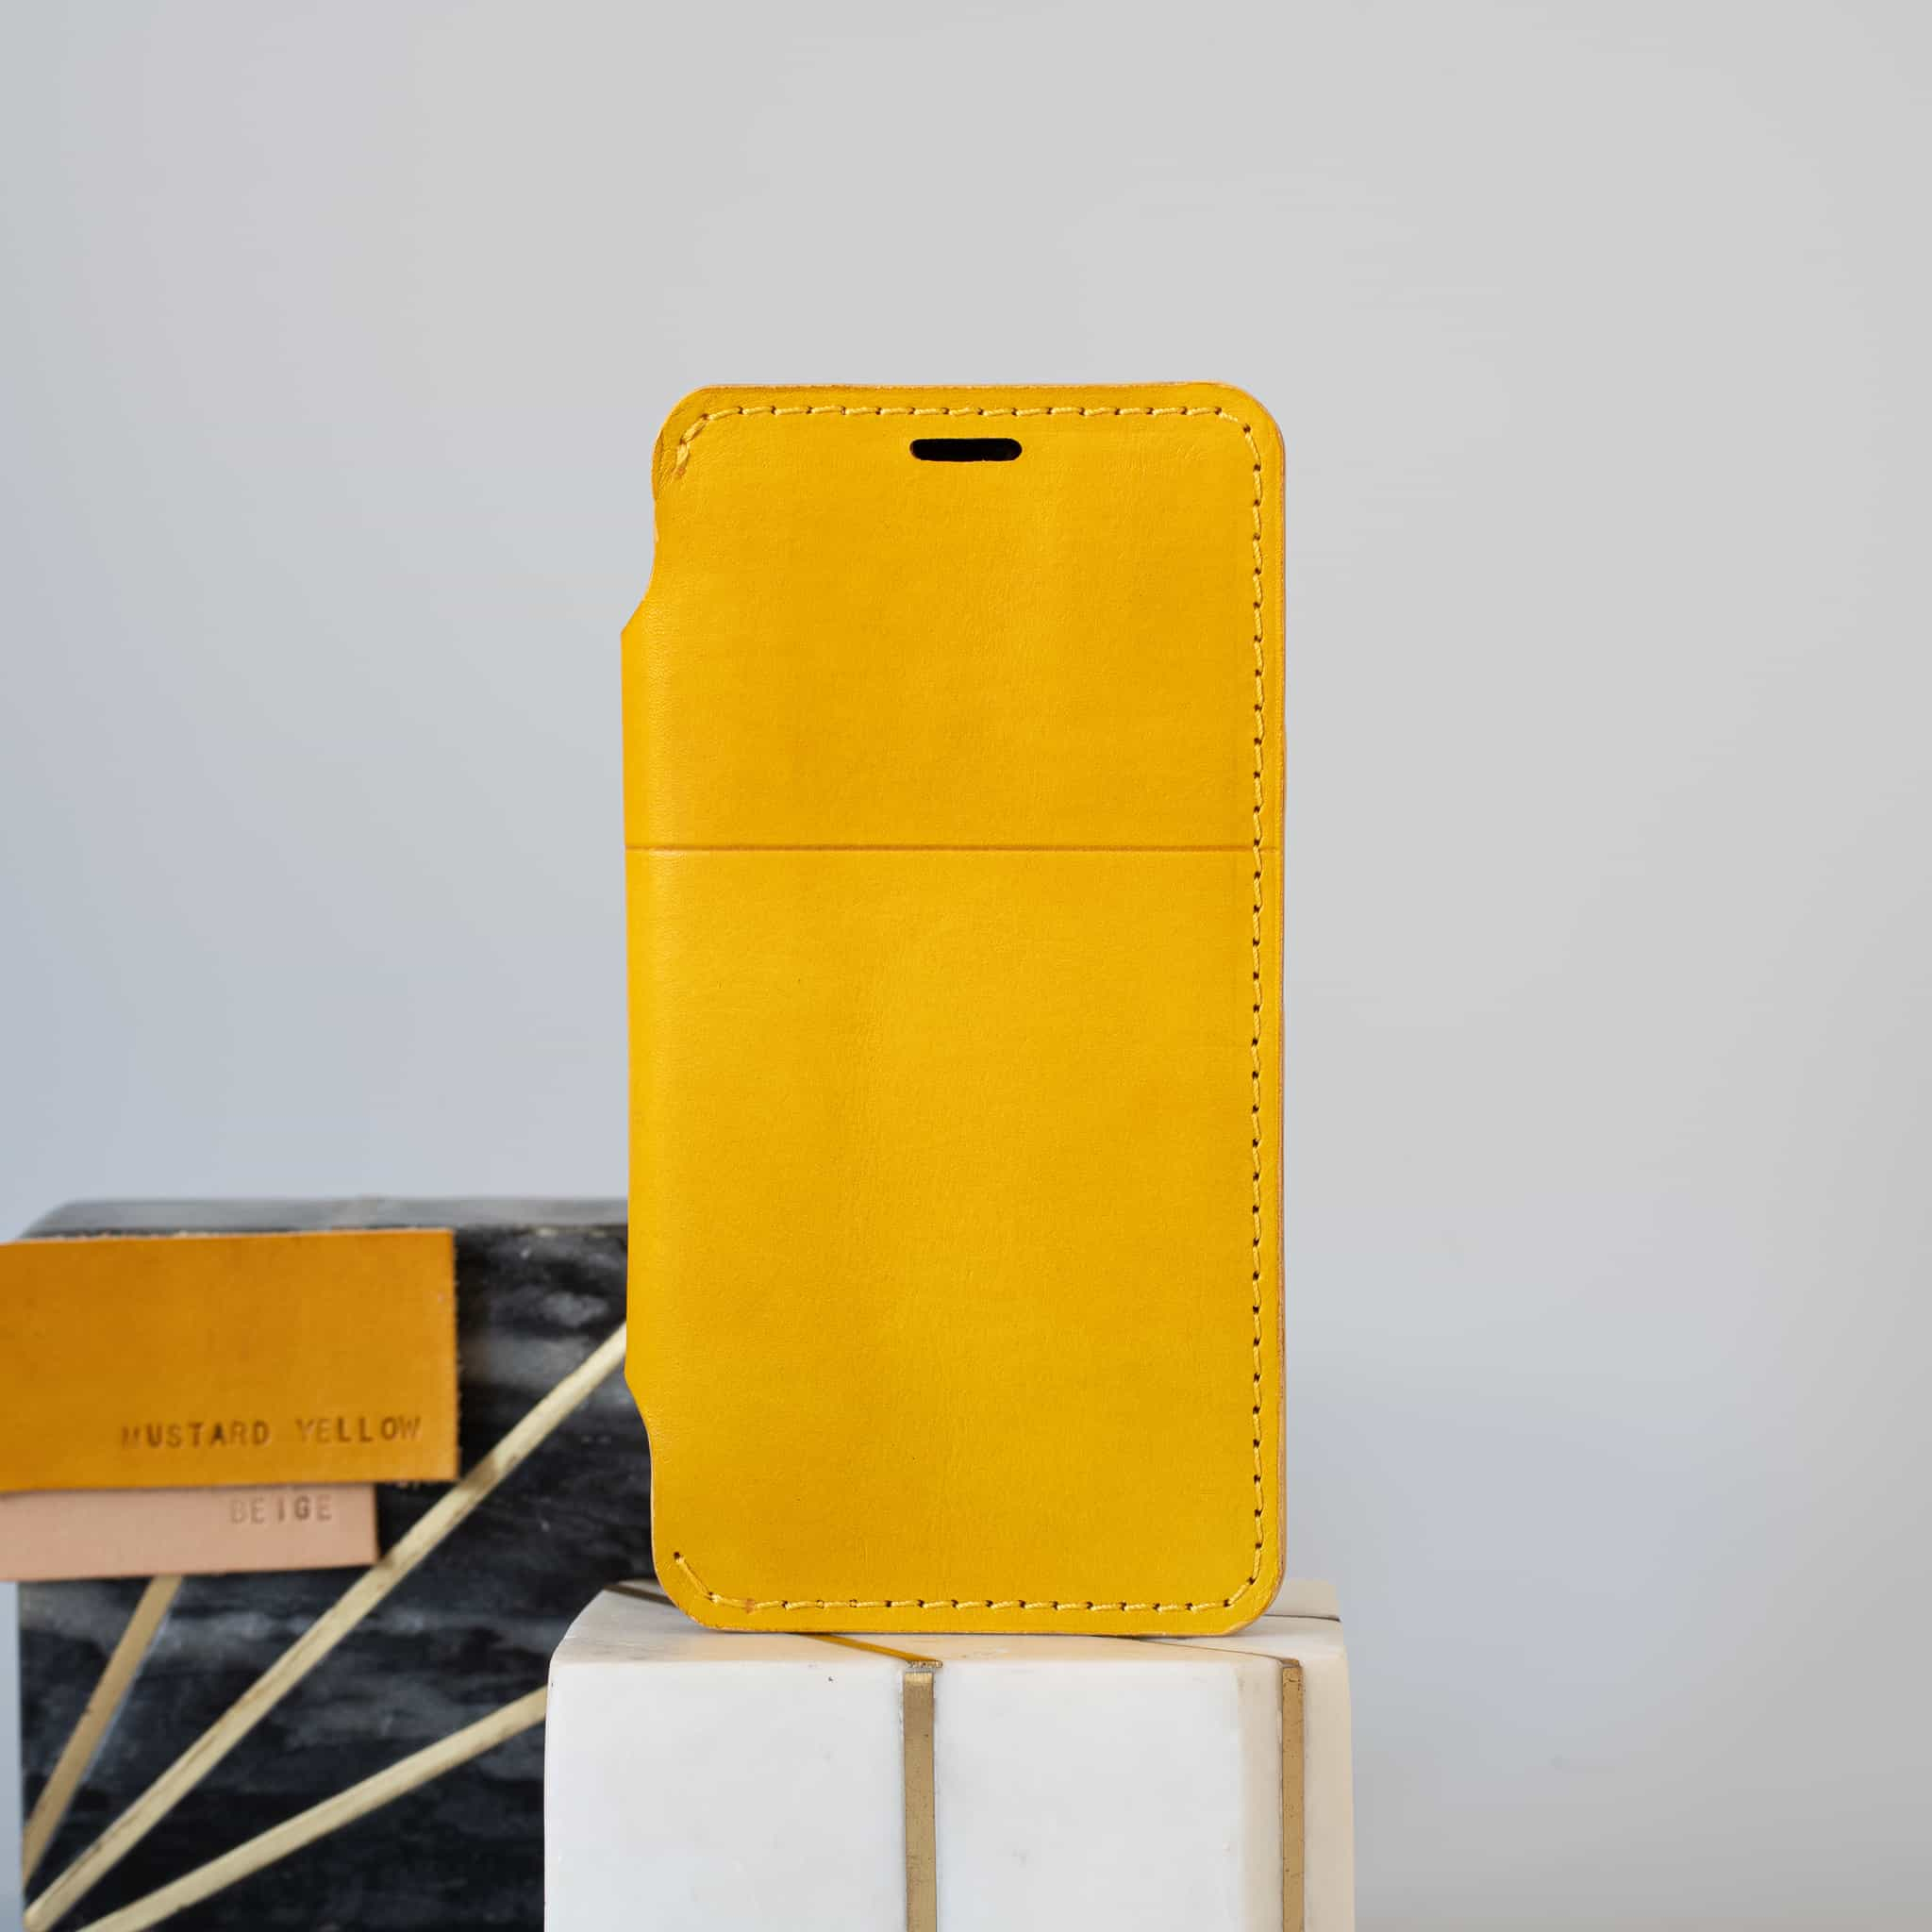 Leather iPhone wallet case